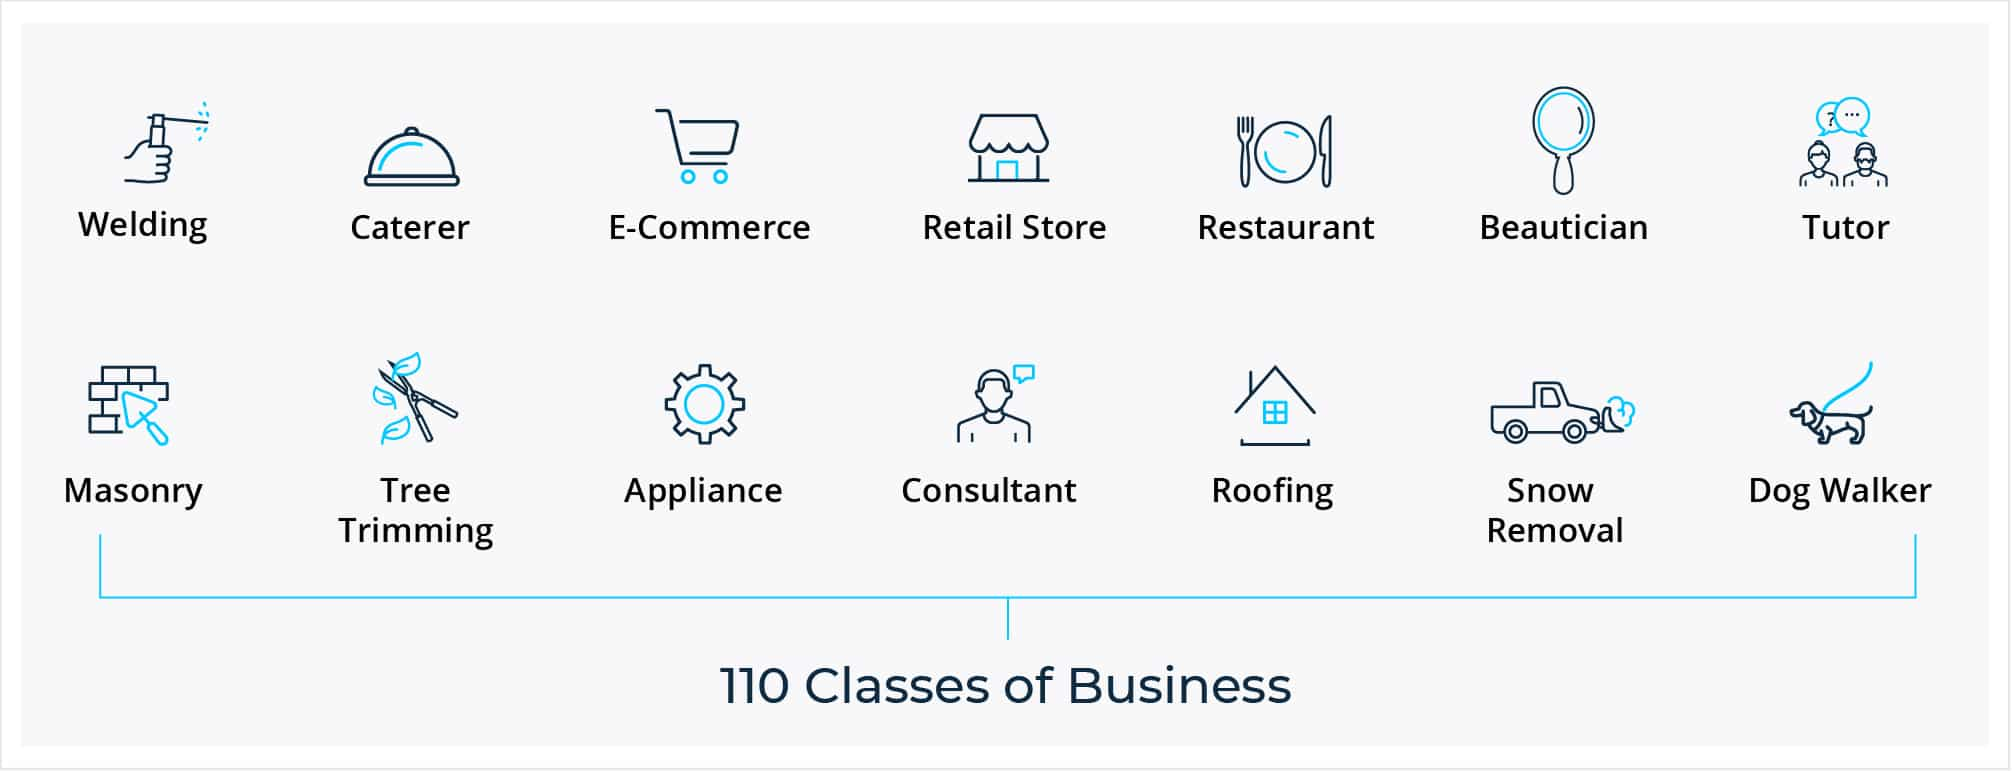 110 Classes of Business